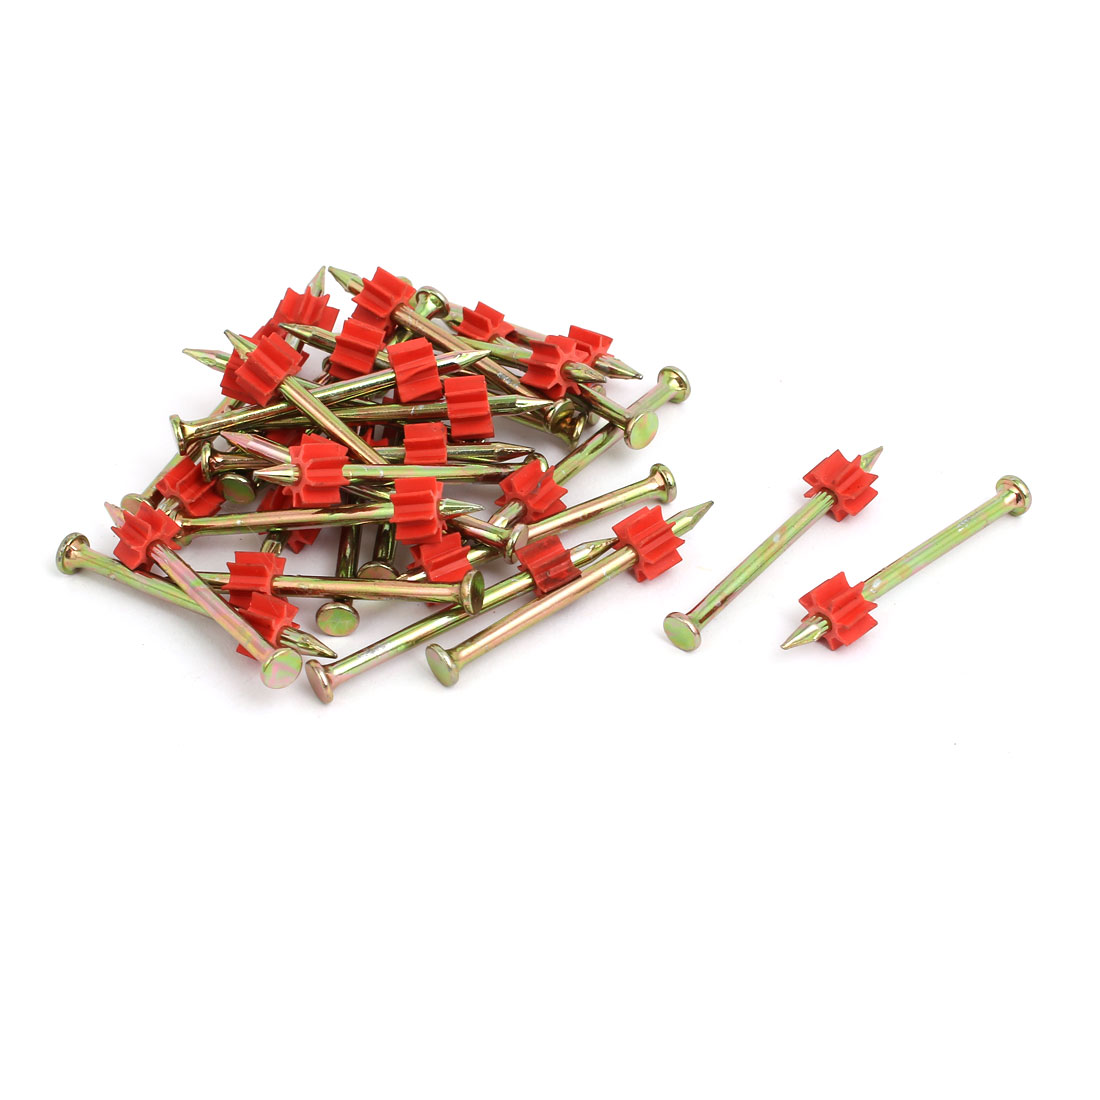 50mm long 3mm Shaft Carbon Steel Hammer Driver Fastener Cement Nail 30pcs